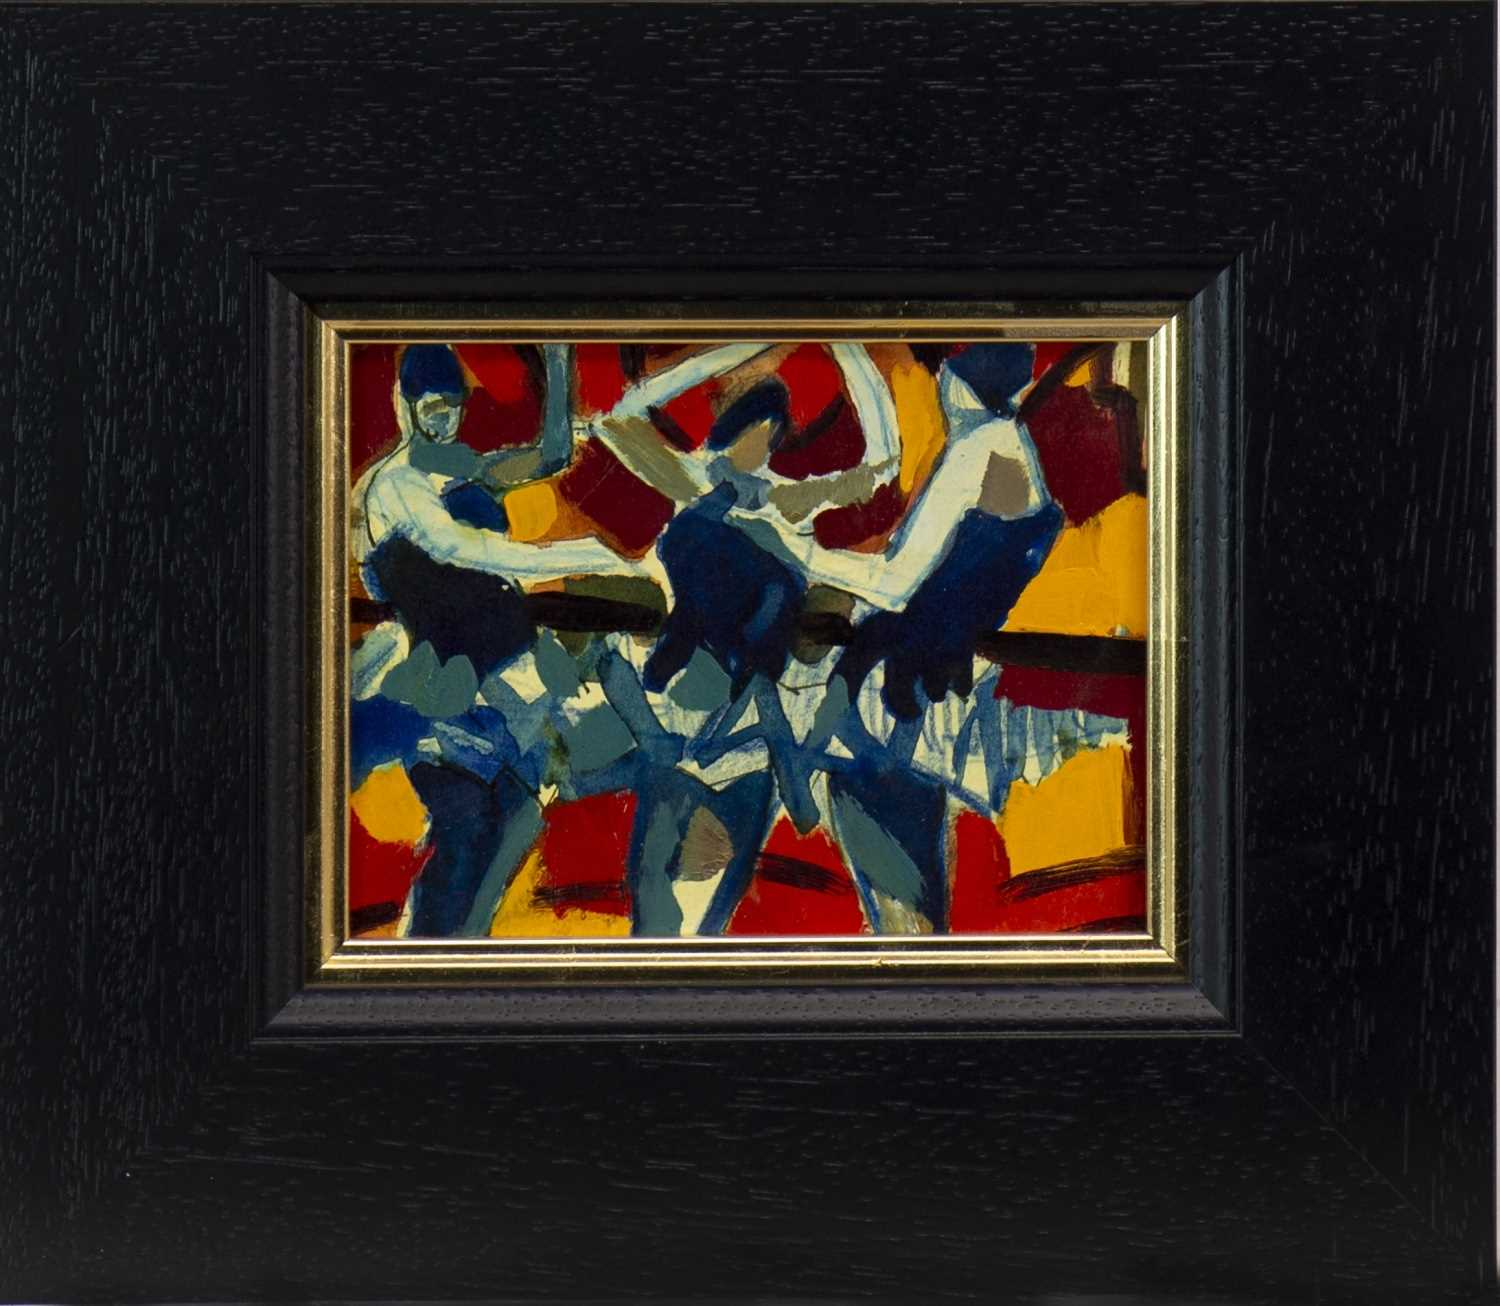 Lot 554-BALLET DANCERS, A MIXED MEDIA BY JAMIE O'DEA